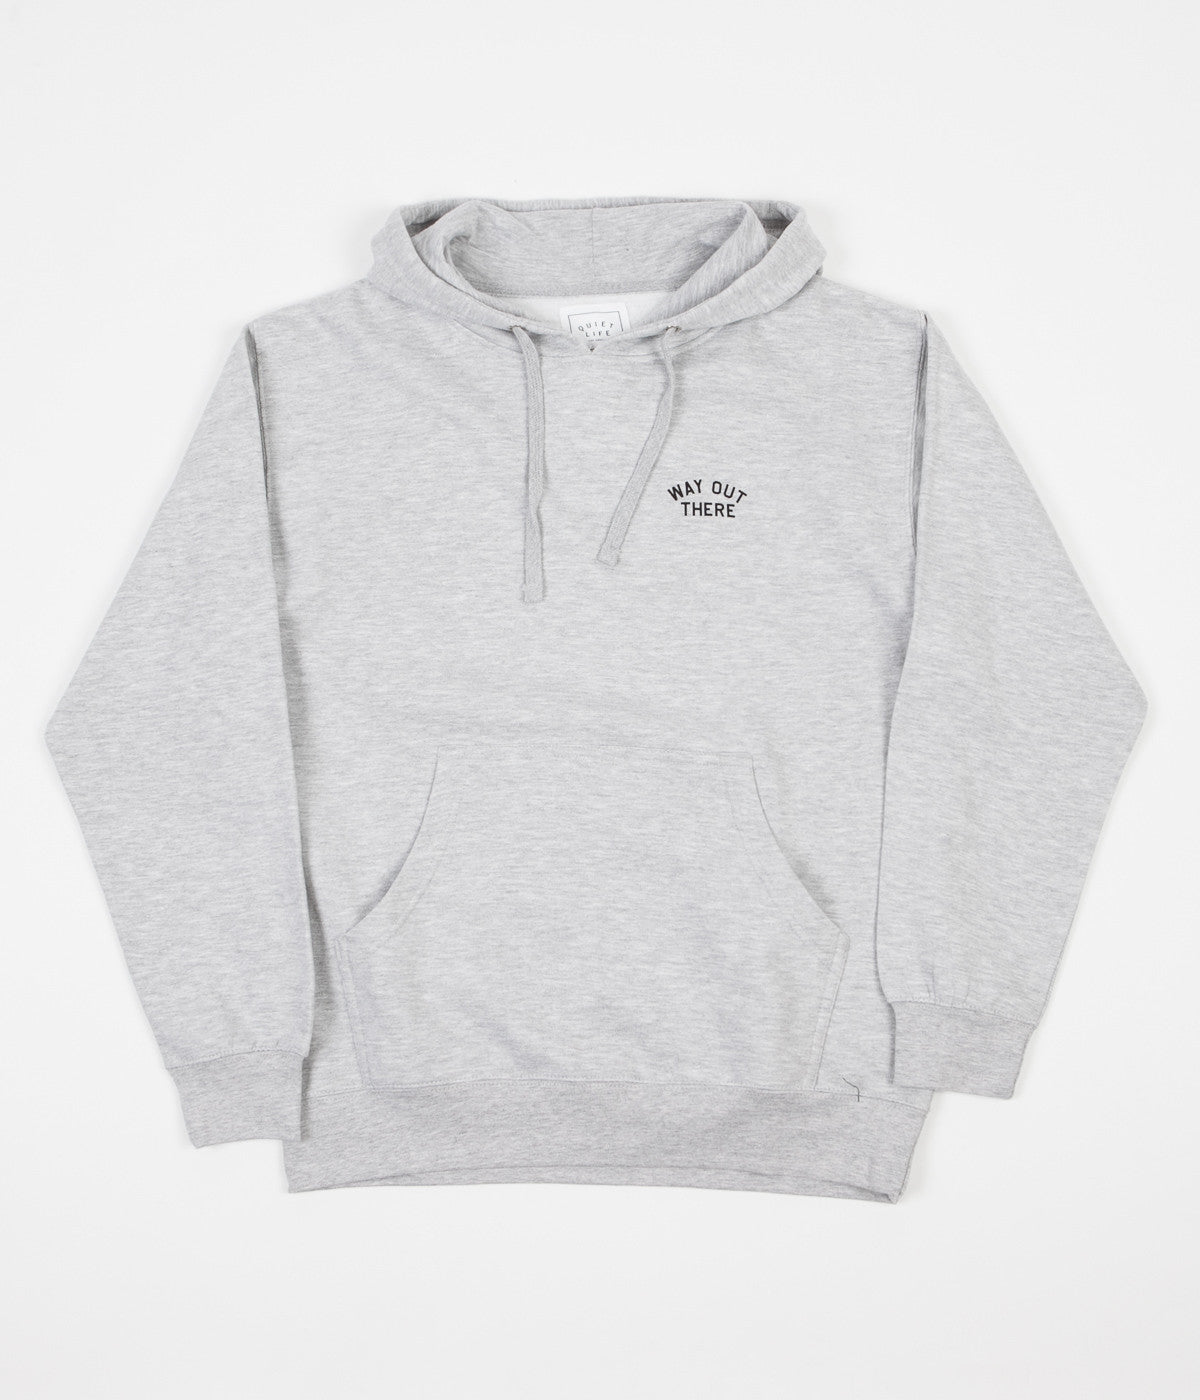 The Quiet Life Way Out Hooded Sweatshirt - Heather Grey